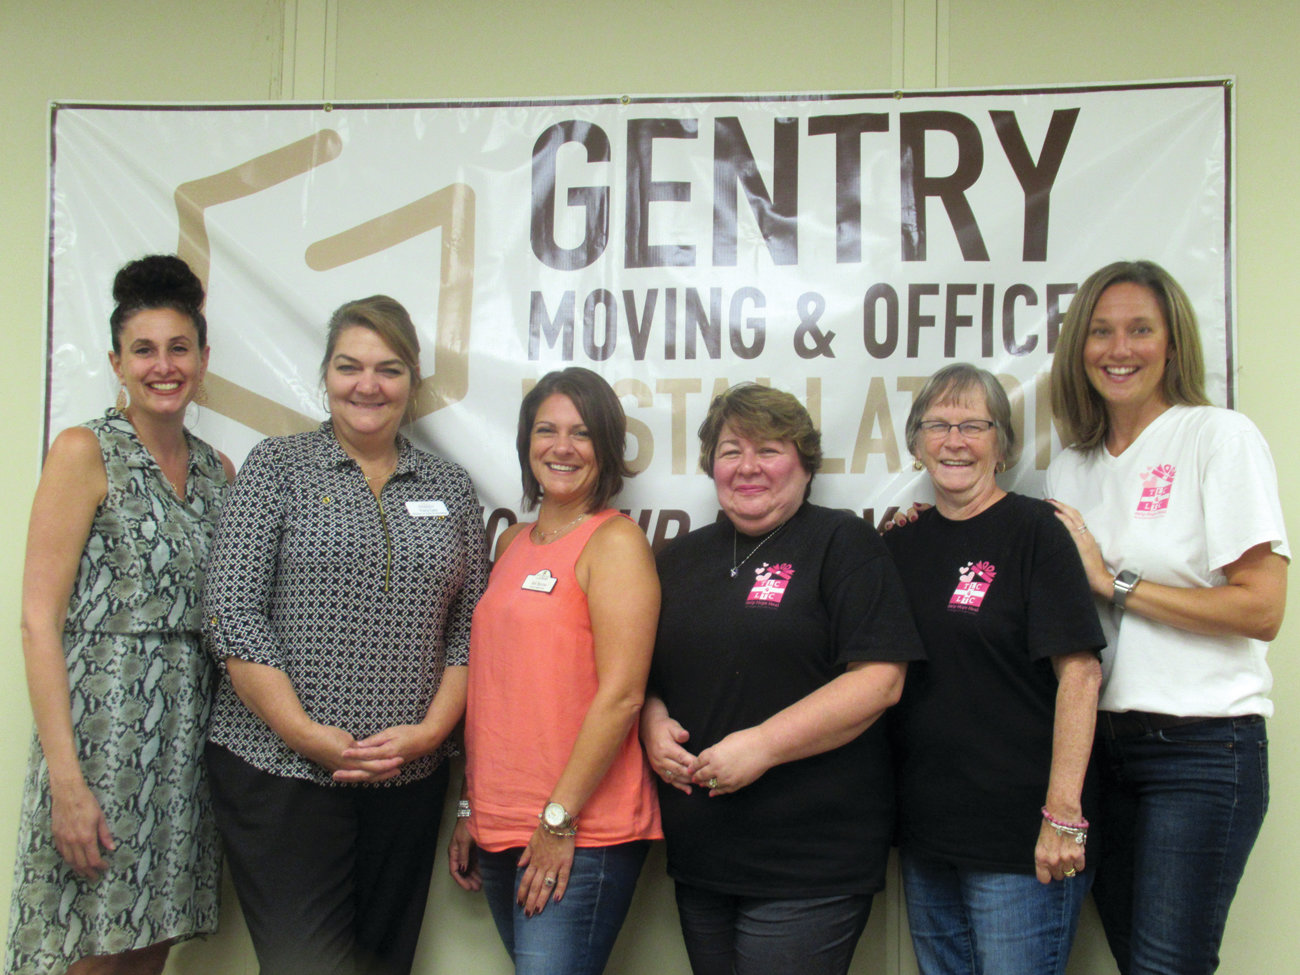 SPECIAL SUPPORTERS: Christine Crum, left, who owns and operates Gentry Moving & Storage in Cranston, co-chaired the Cornhole Elimination Tournament and hosted the fundraiser when the event was threatened by rain. She's joined by committee members Tracy Cale, Jen Burns, Lisa Ferreira and Karen Morin. Not pictured are Kelly Marot and Pam Marchetti.